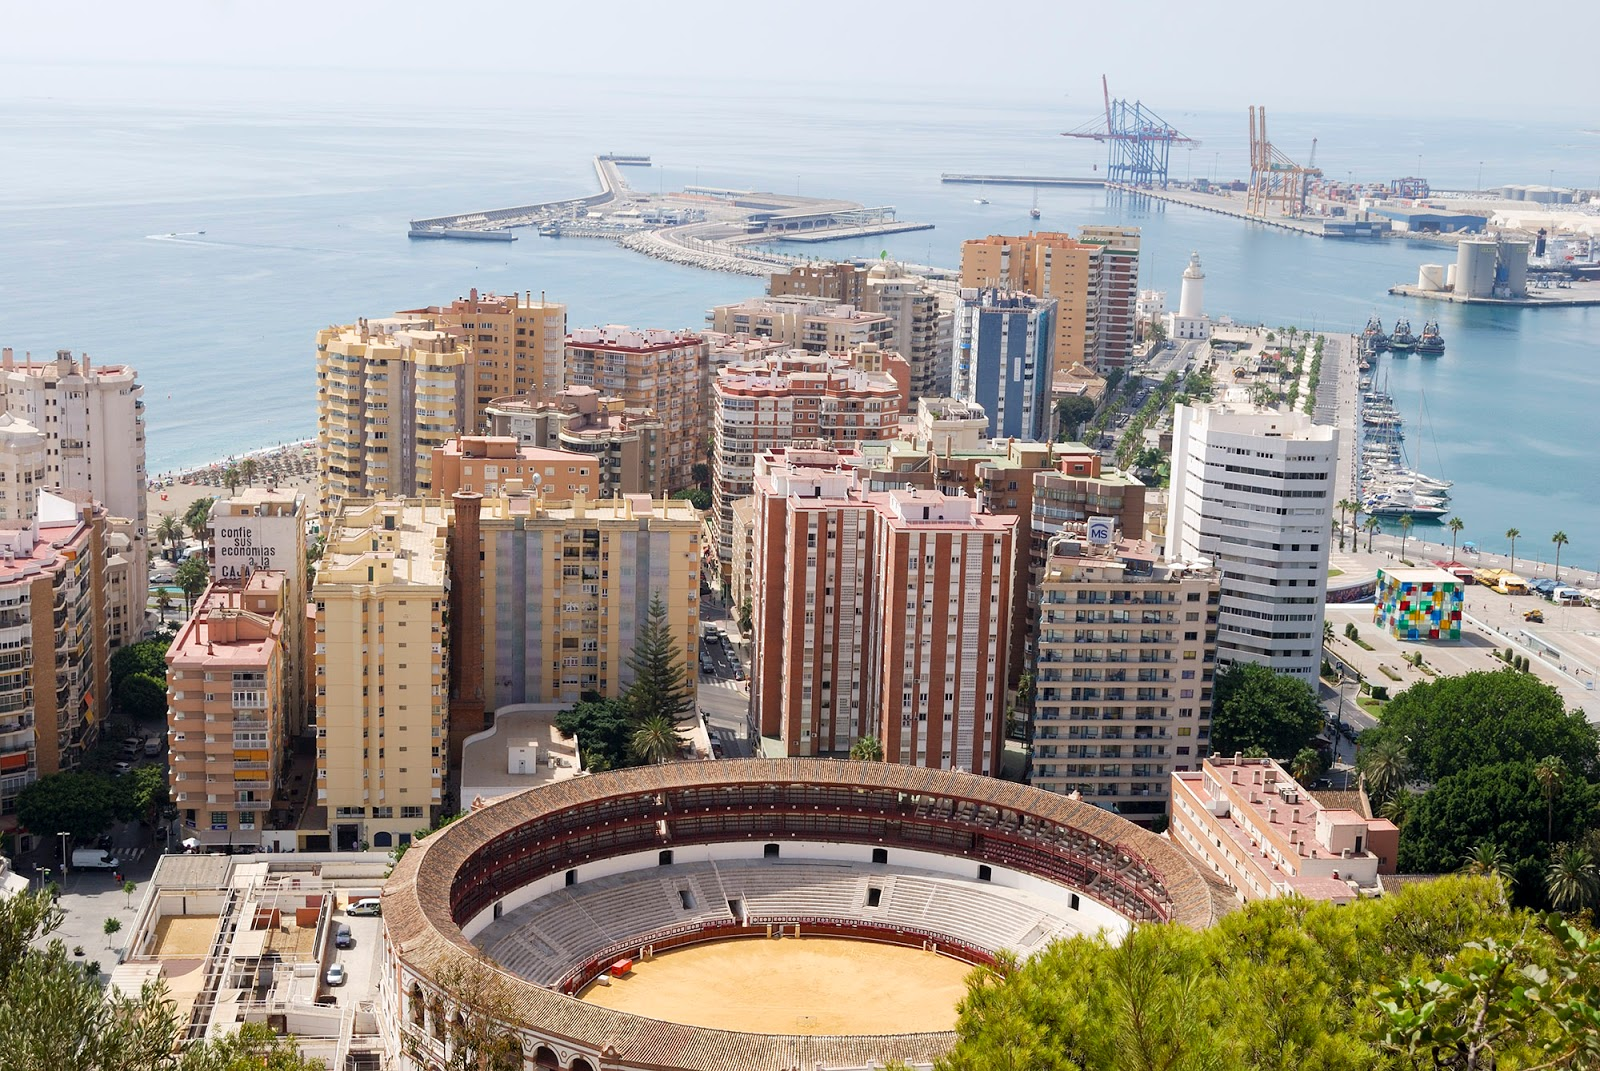 malaga spain bullfighting ring beach views port